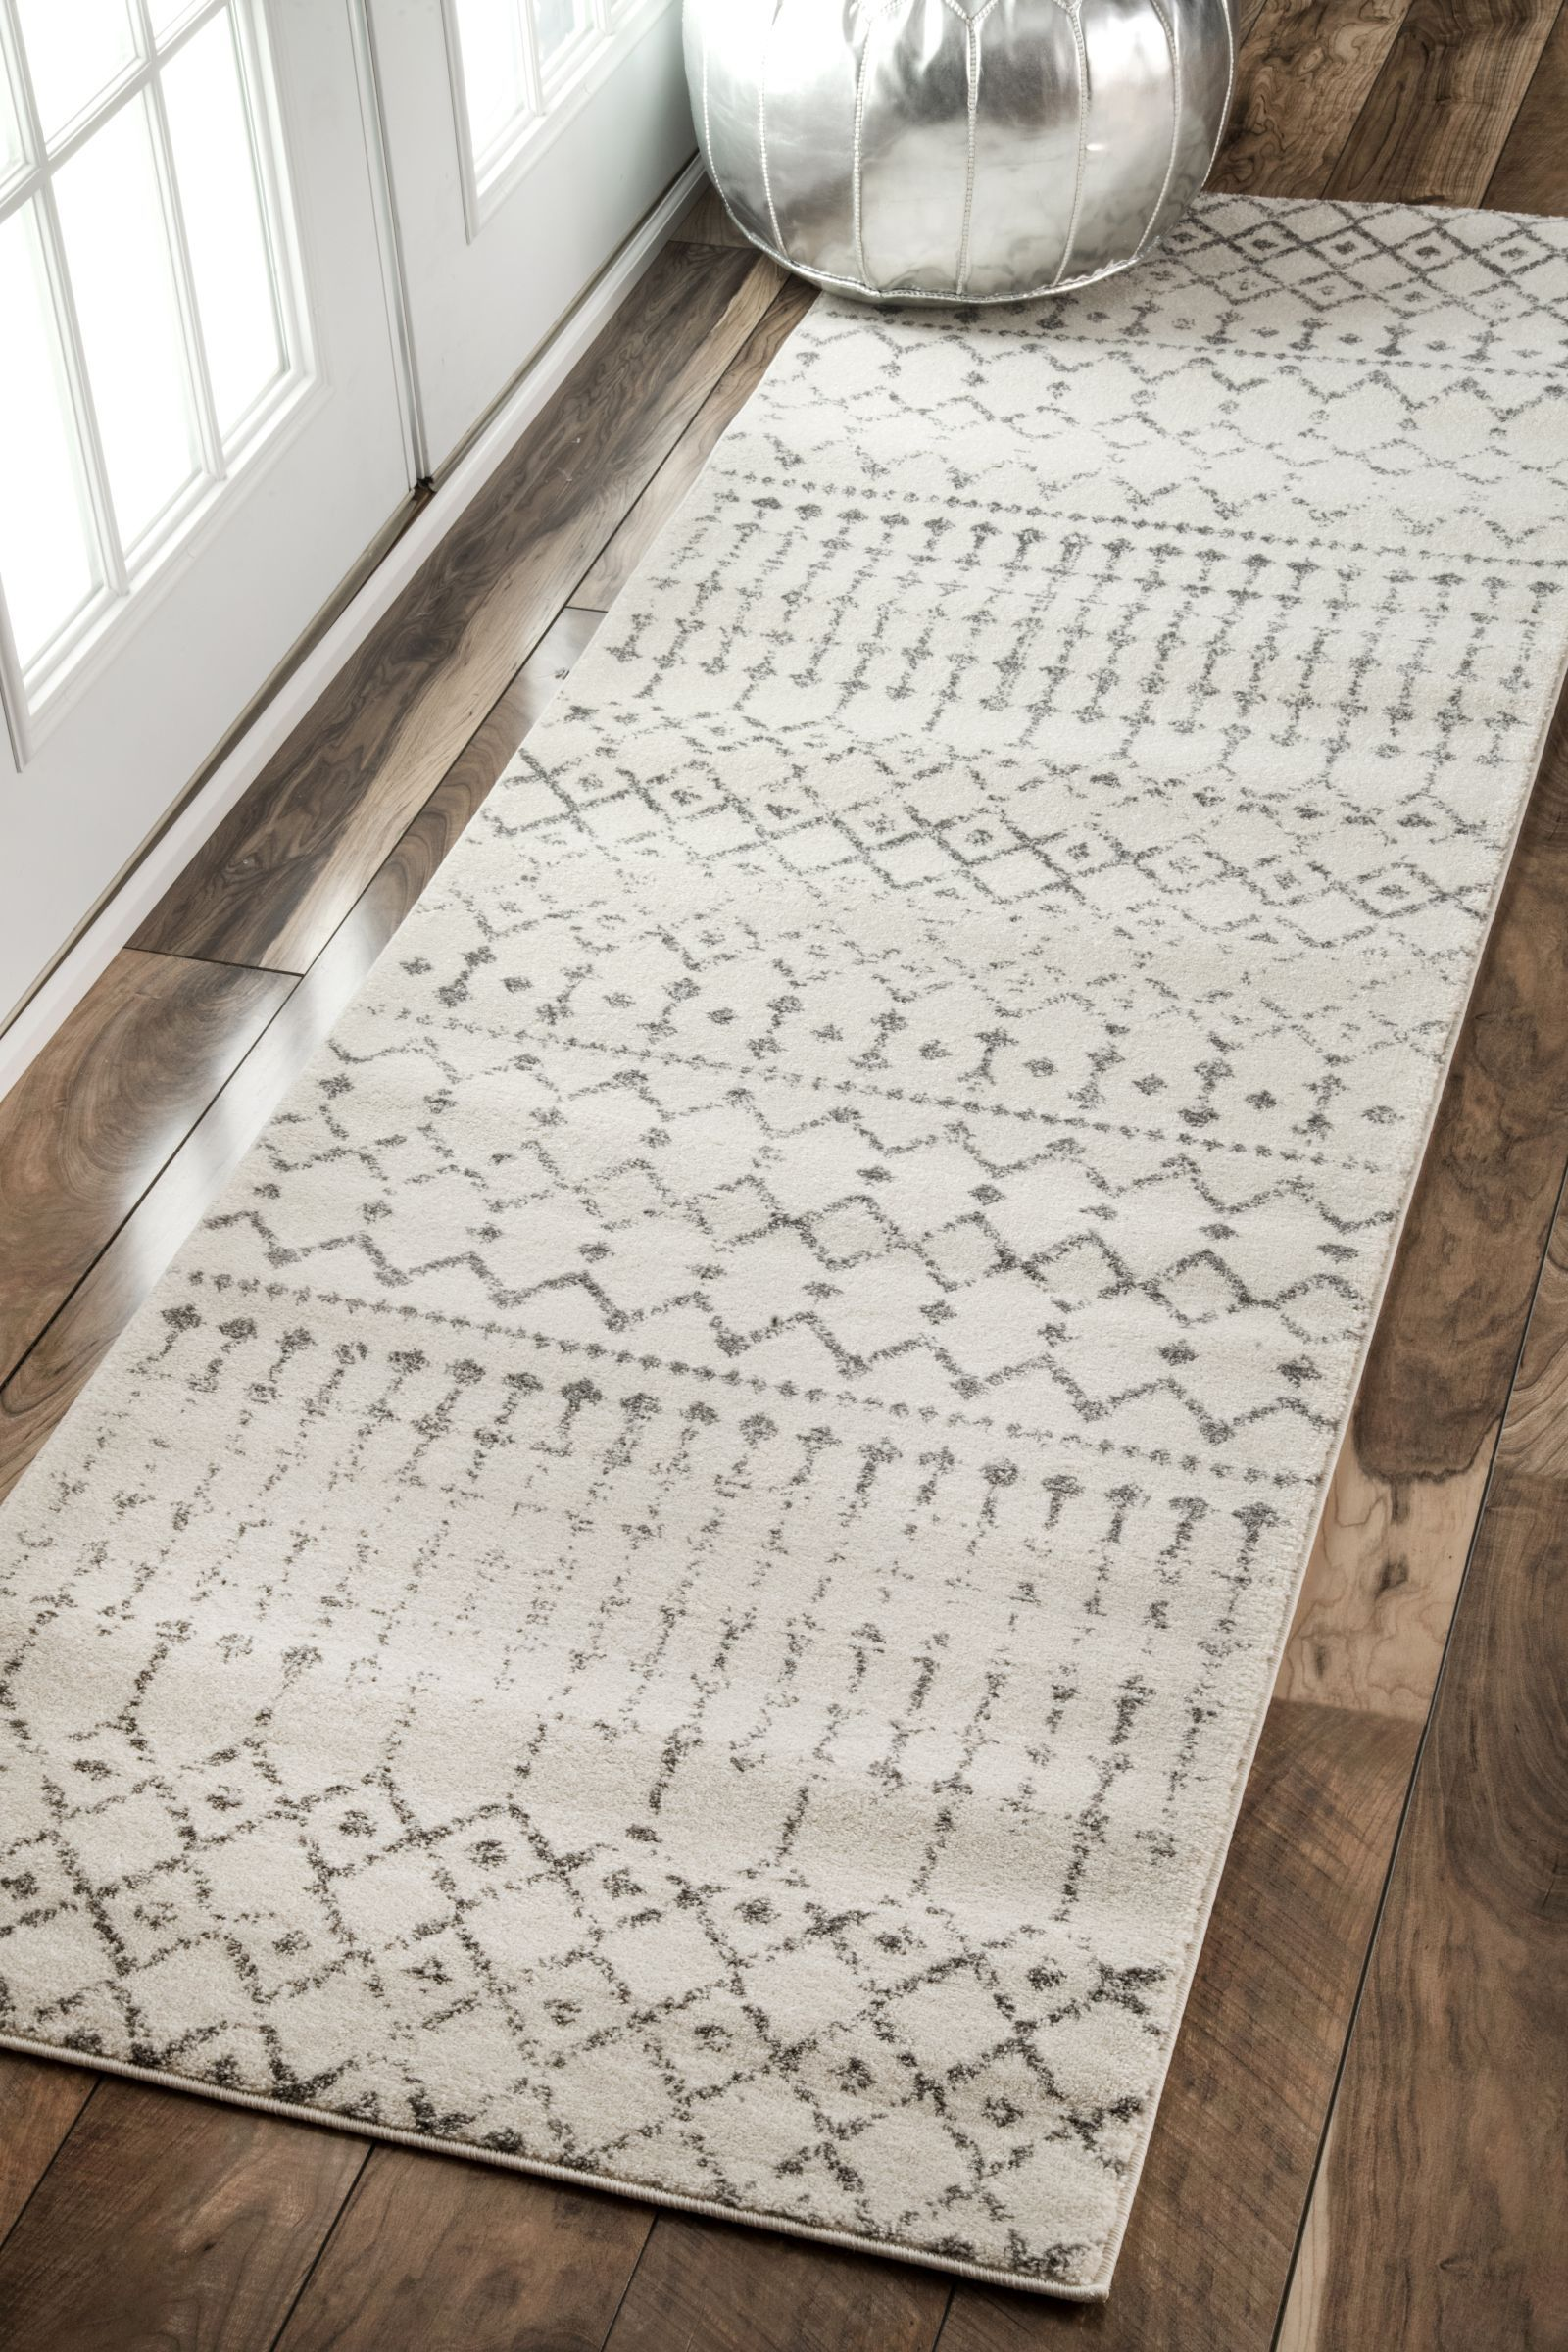 Rugs usa area rugs in many styles including contemporary for Contemporary runner rugs for hallway